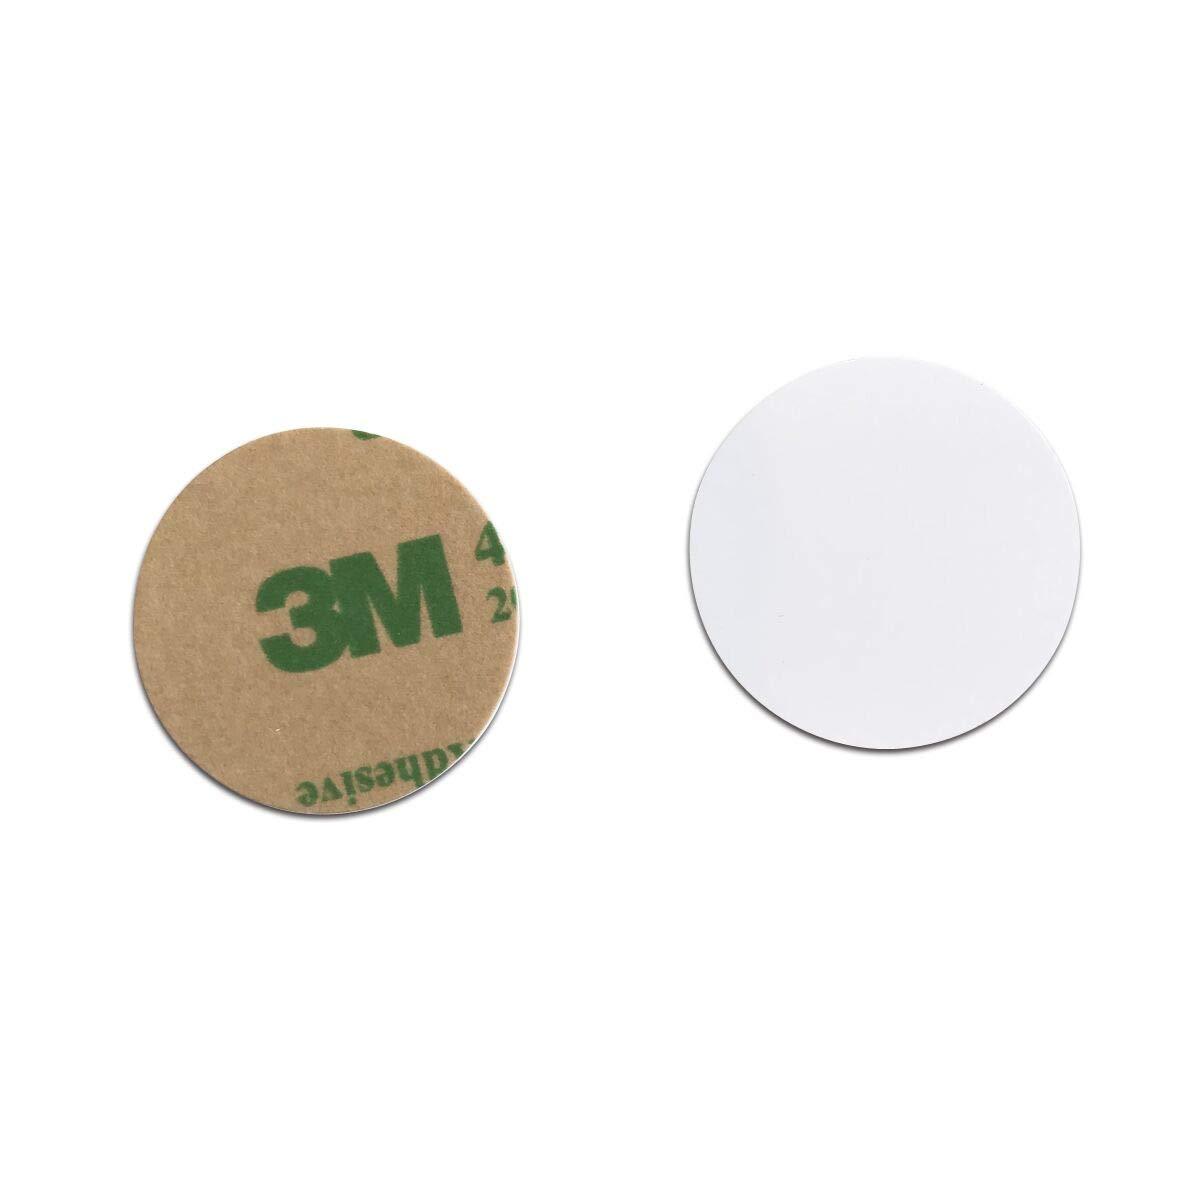 100pcs Ф25mm 125KHz sticker coin EM4100 RFID Induction Round tag card Waterproof KingGo Electronics 4331026354